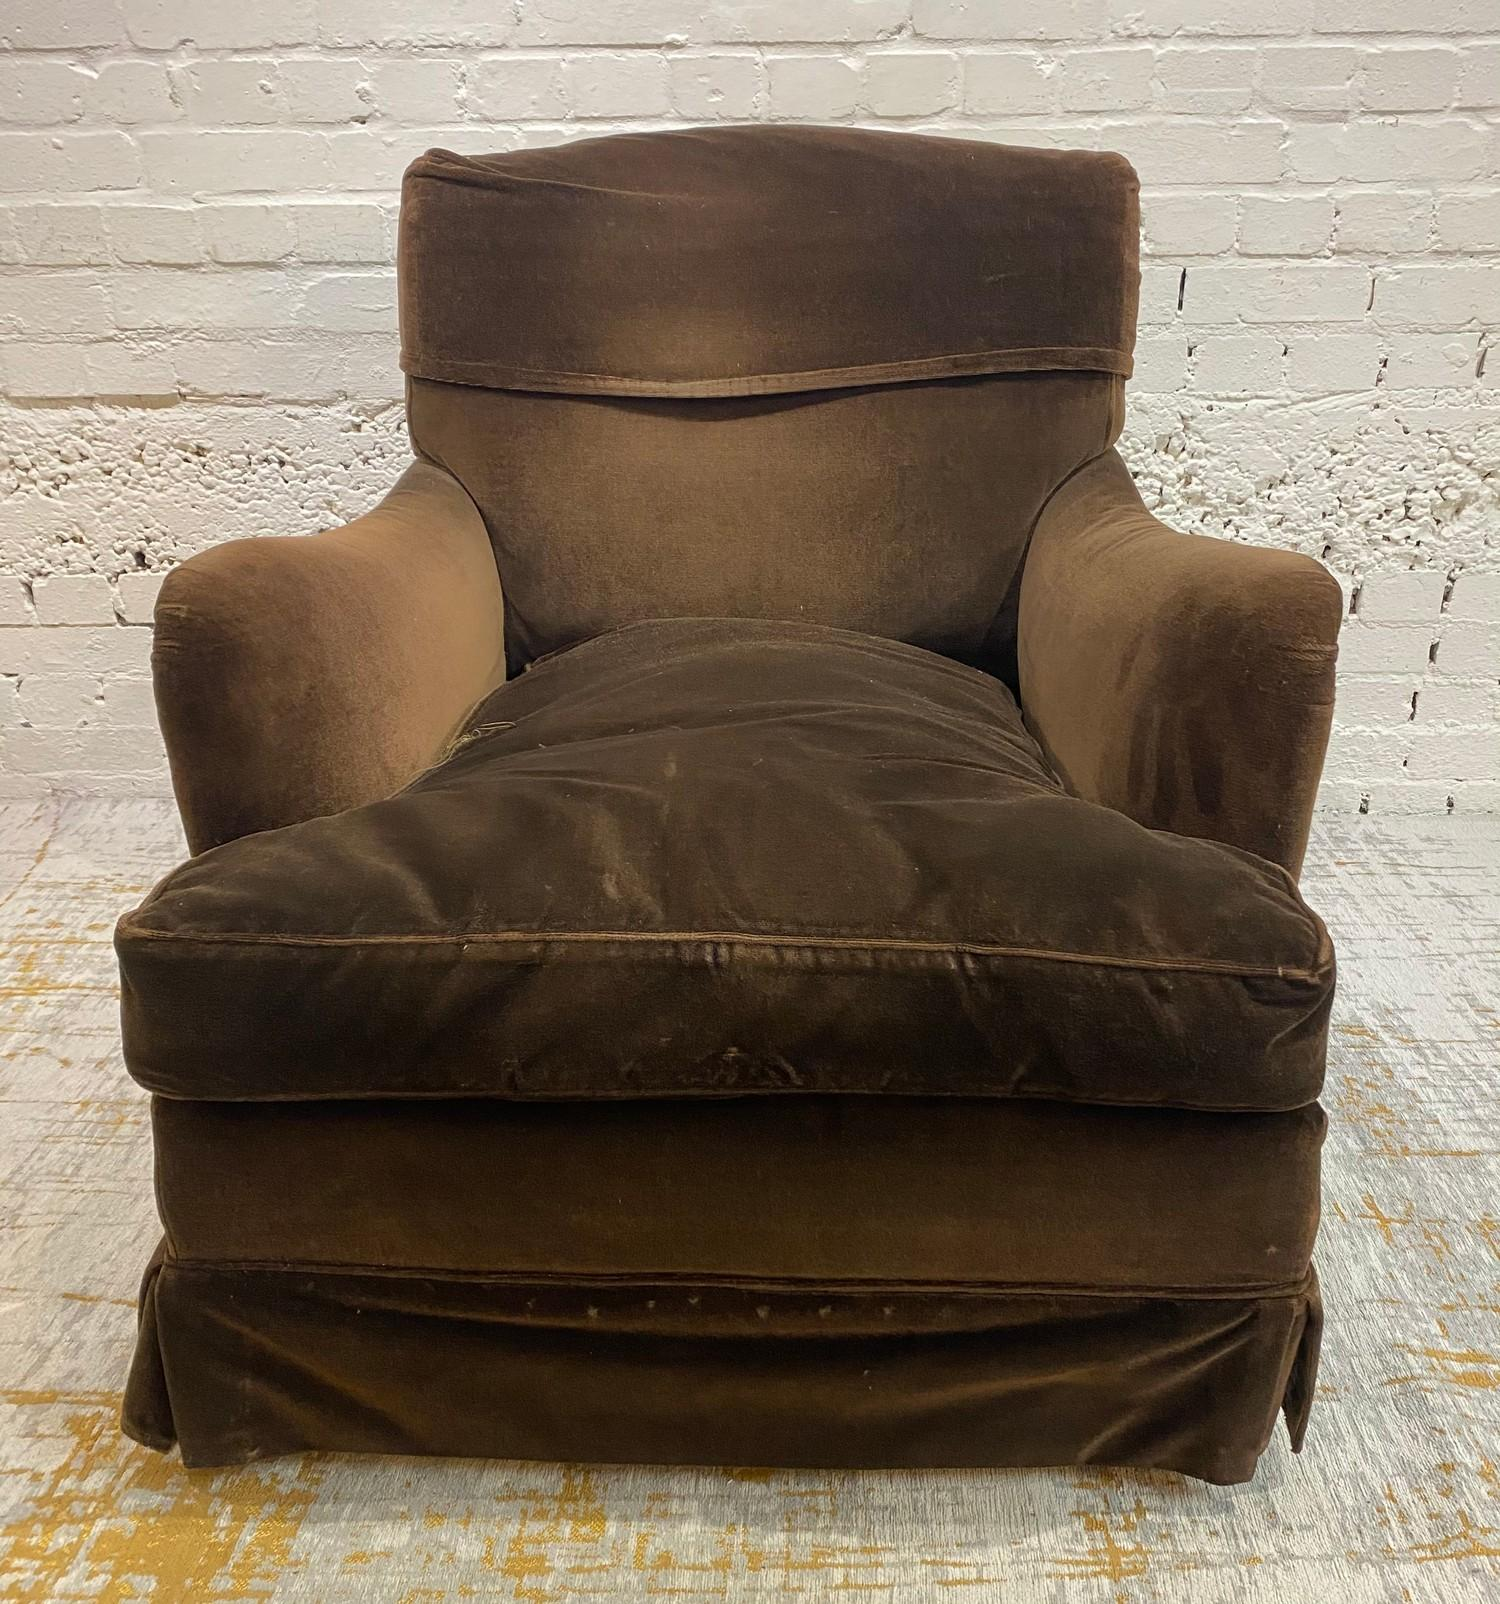 HOWARD AND SONS BRIDGEWATER ARMCHAIR, stamped 'Howard Chairs, 48 Sth Audley St London W.1 2385?, - Image 4 of 14